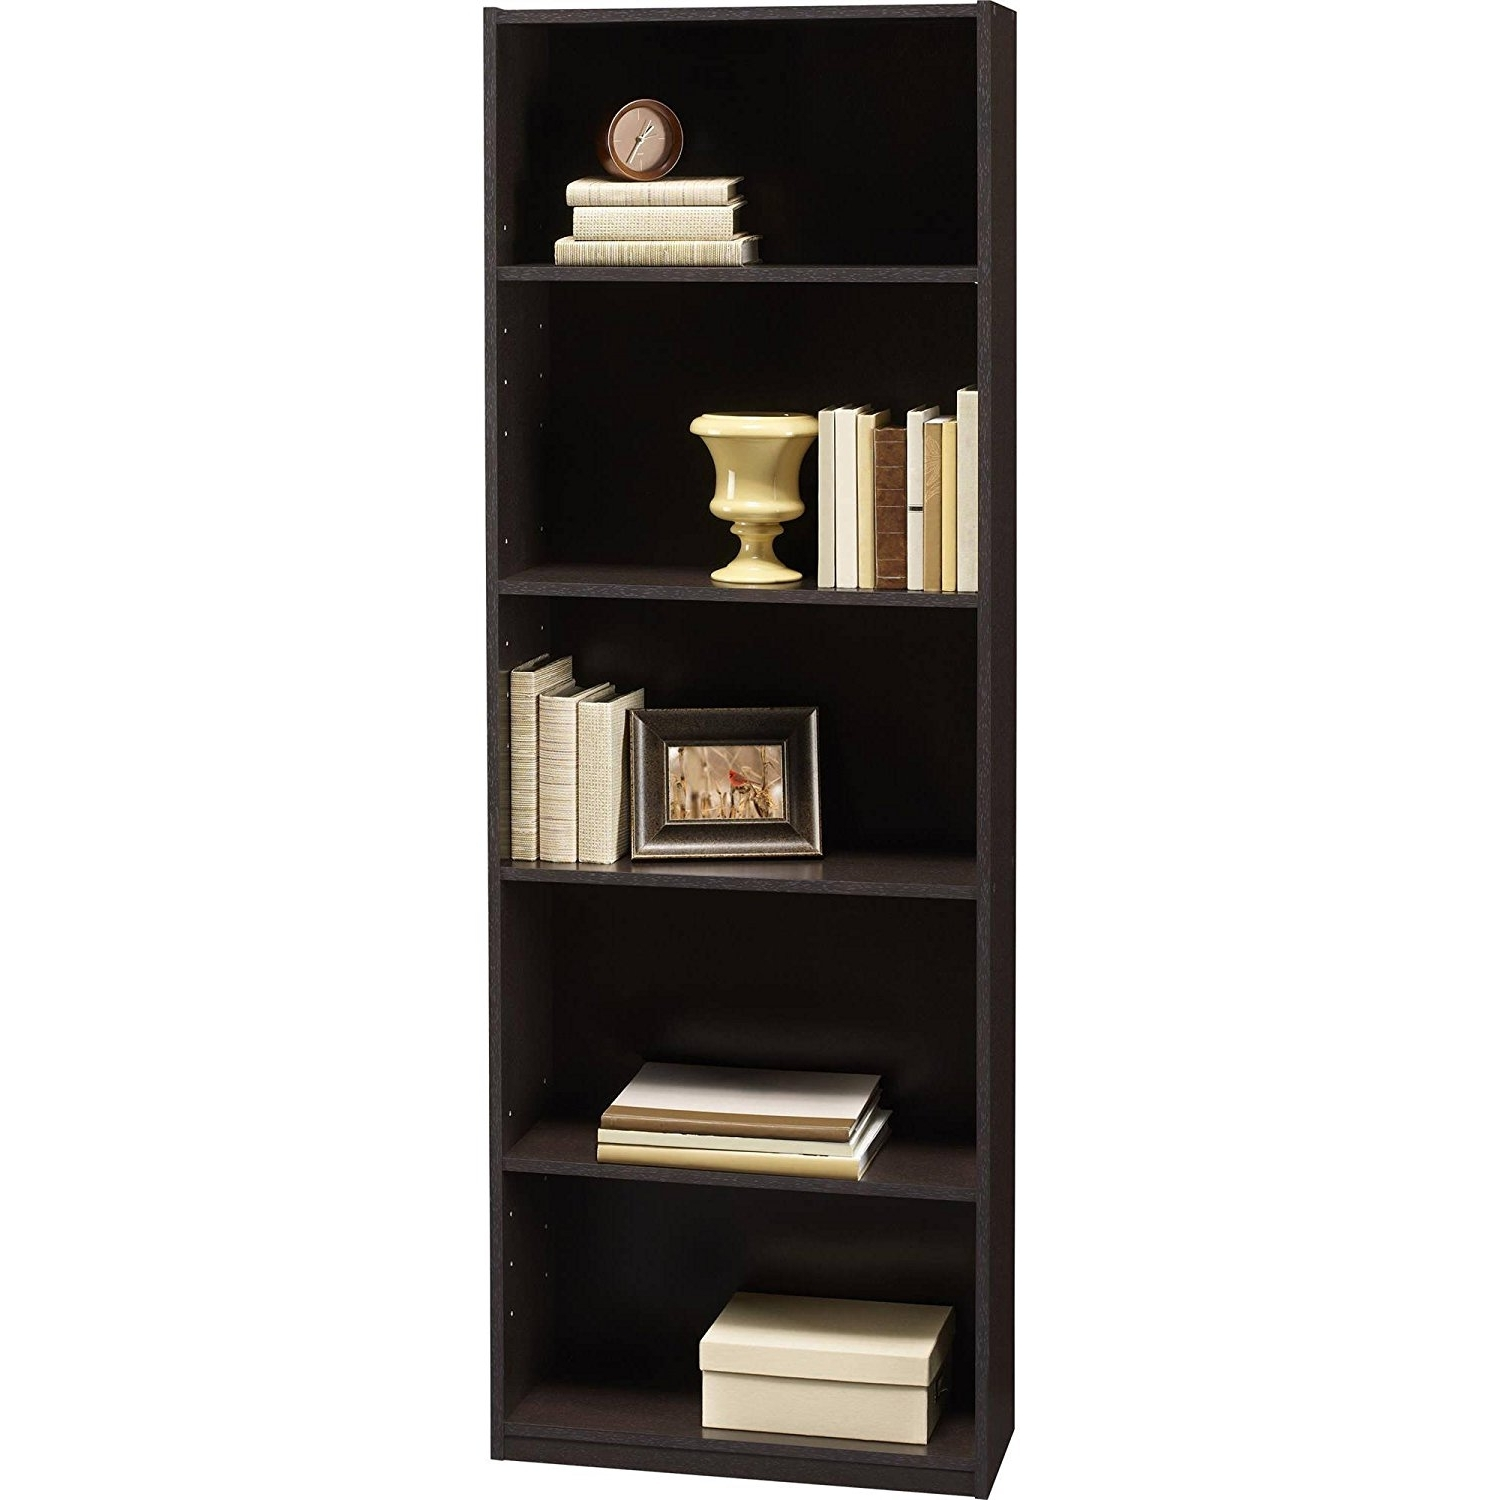 Most Recently Released Amazon: Ameriwood 5 Shelf Bookcases, Set Of 2, Espresso Throughout 5 Shelf Bookcases (View 8 of 15)